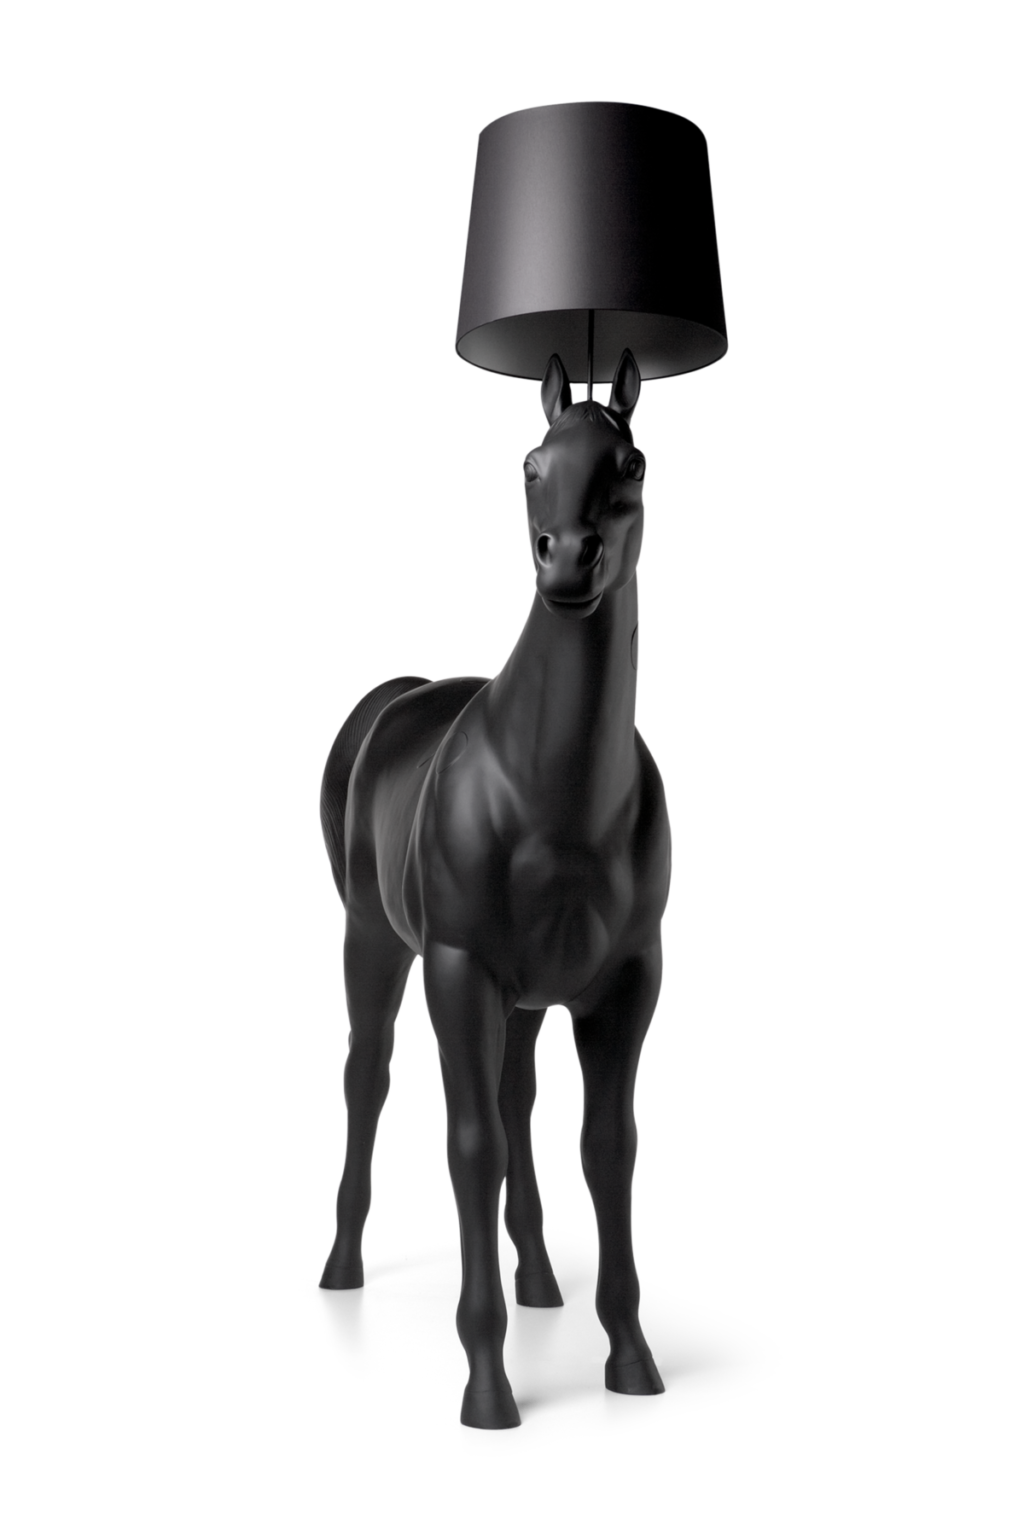 https://desidea.hu/wp-content/uploads/fly-images/160178/moooi-allolampa-horse5-1024x0.png